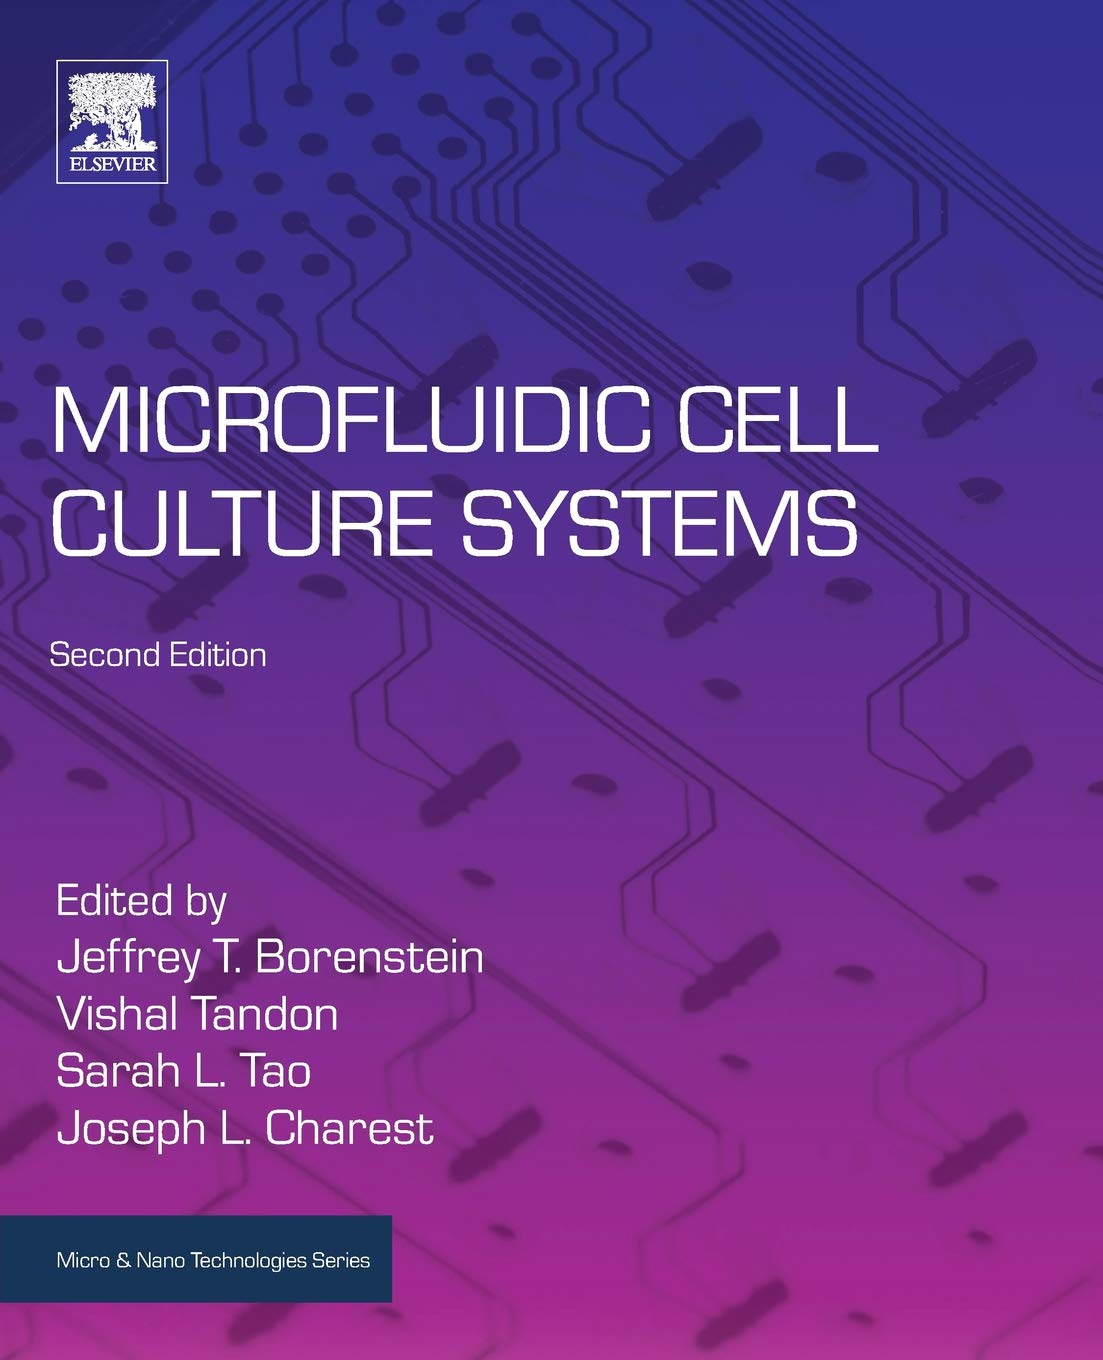 Microfluidic cell culture has entered the big league